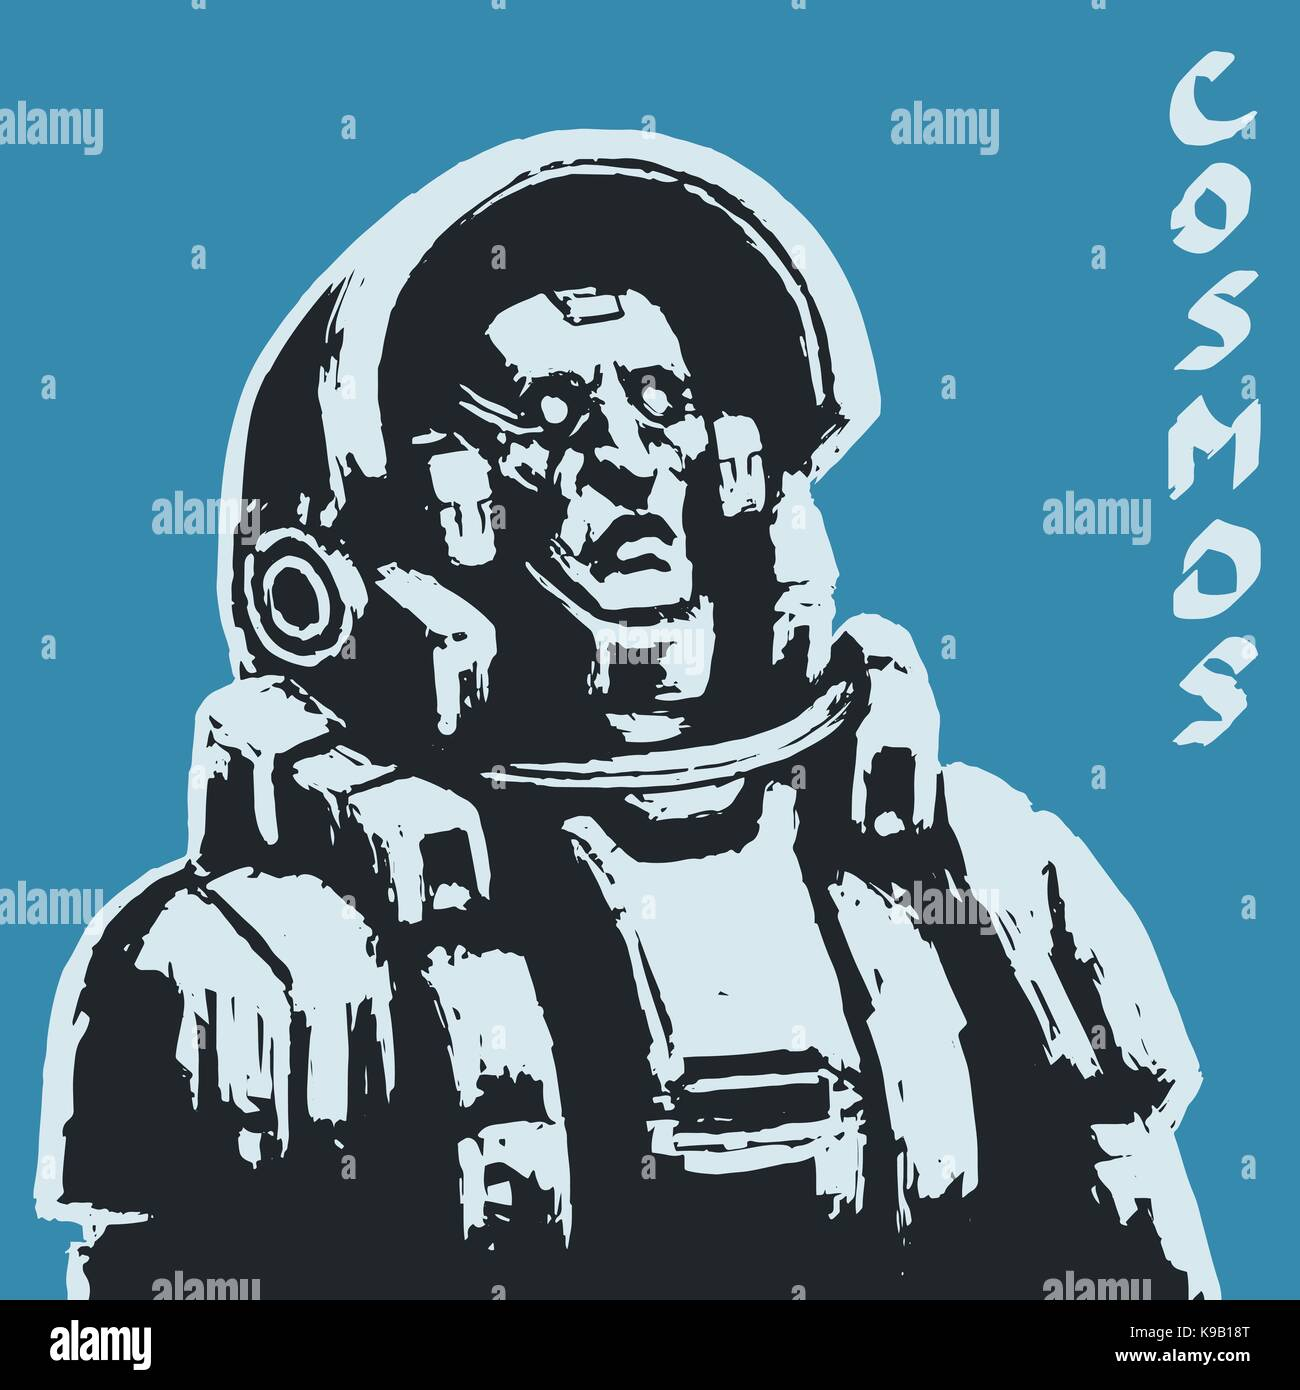 Astronaut sketch on black background. Cool science fiction spaceman cover. Serious character in space suit. Day - Stock Vector